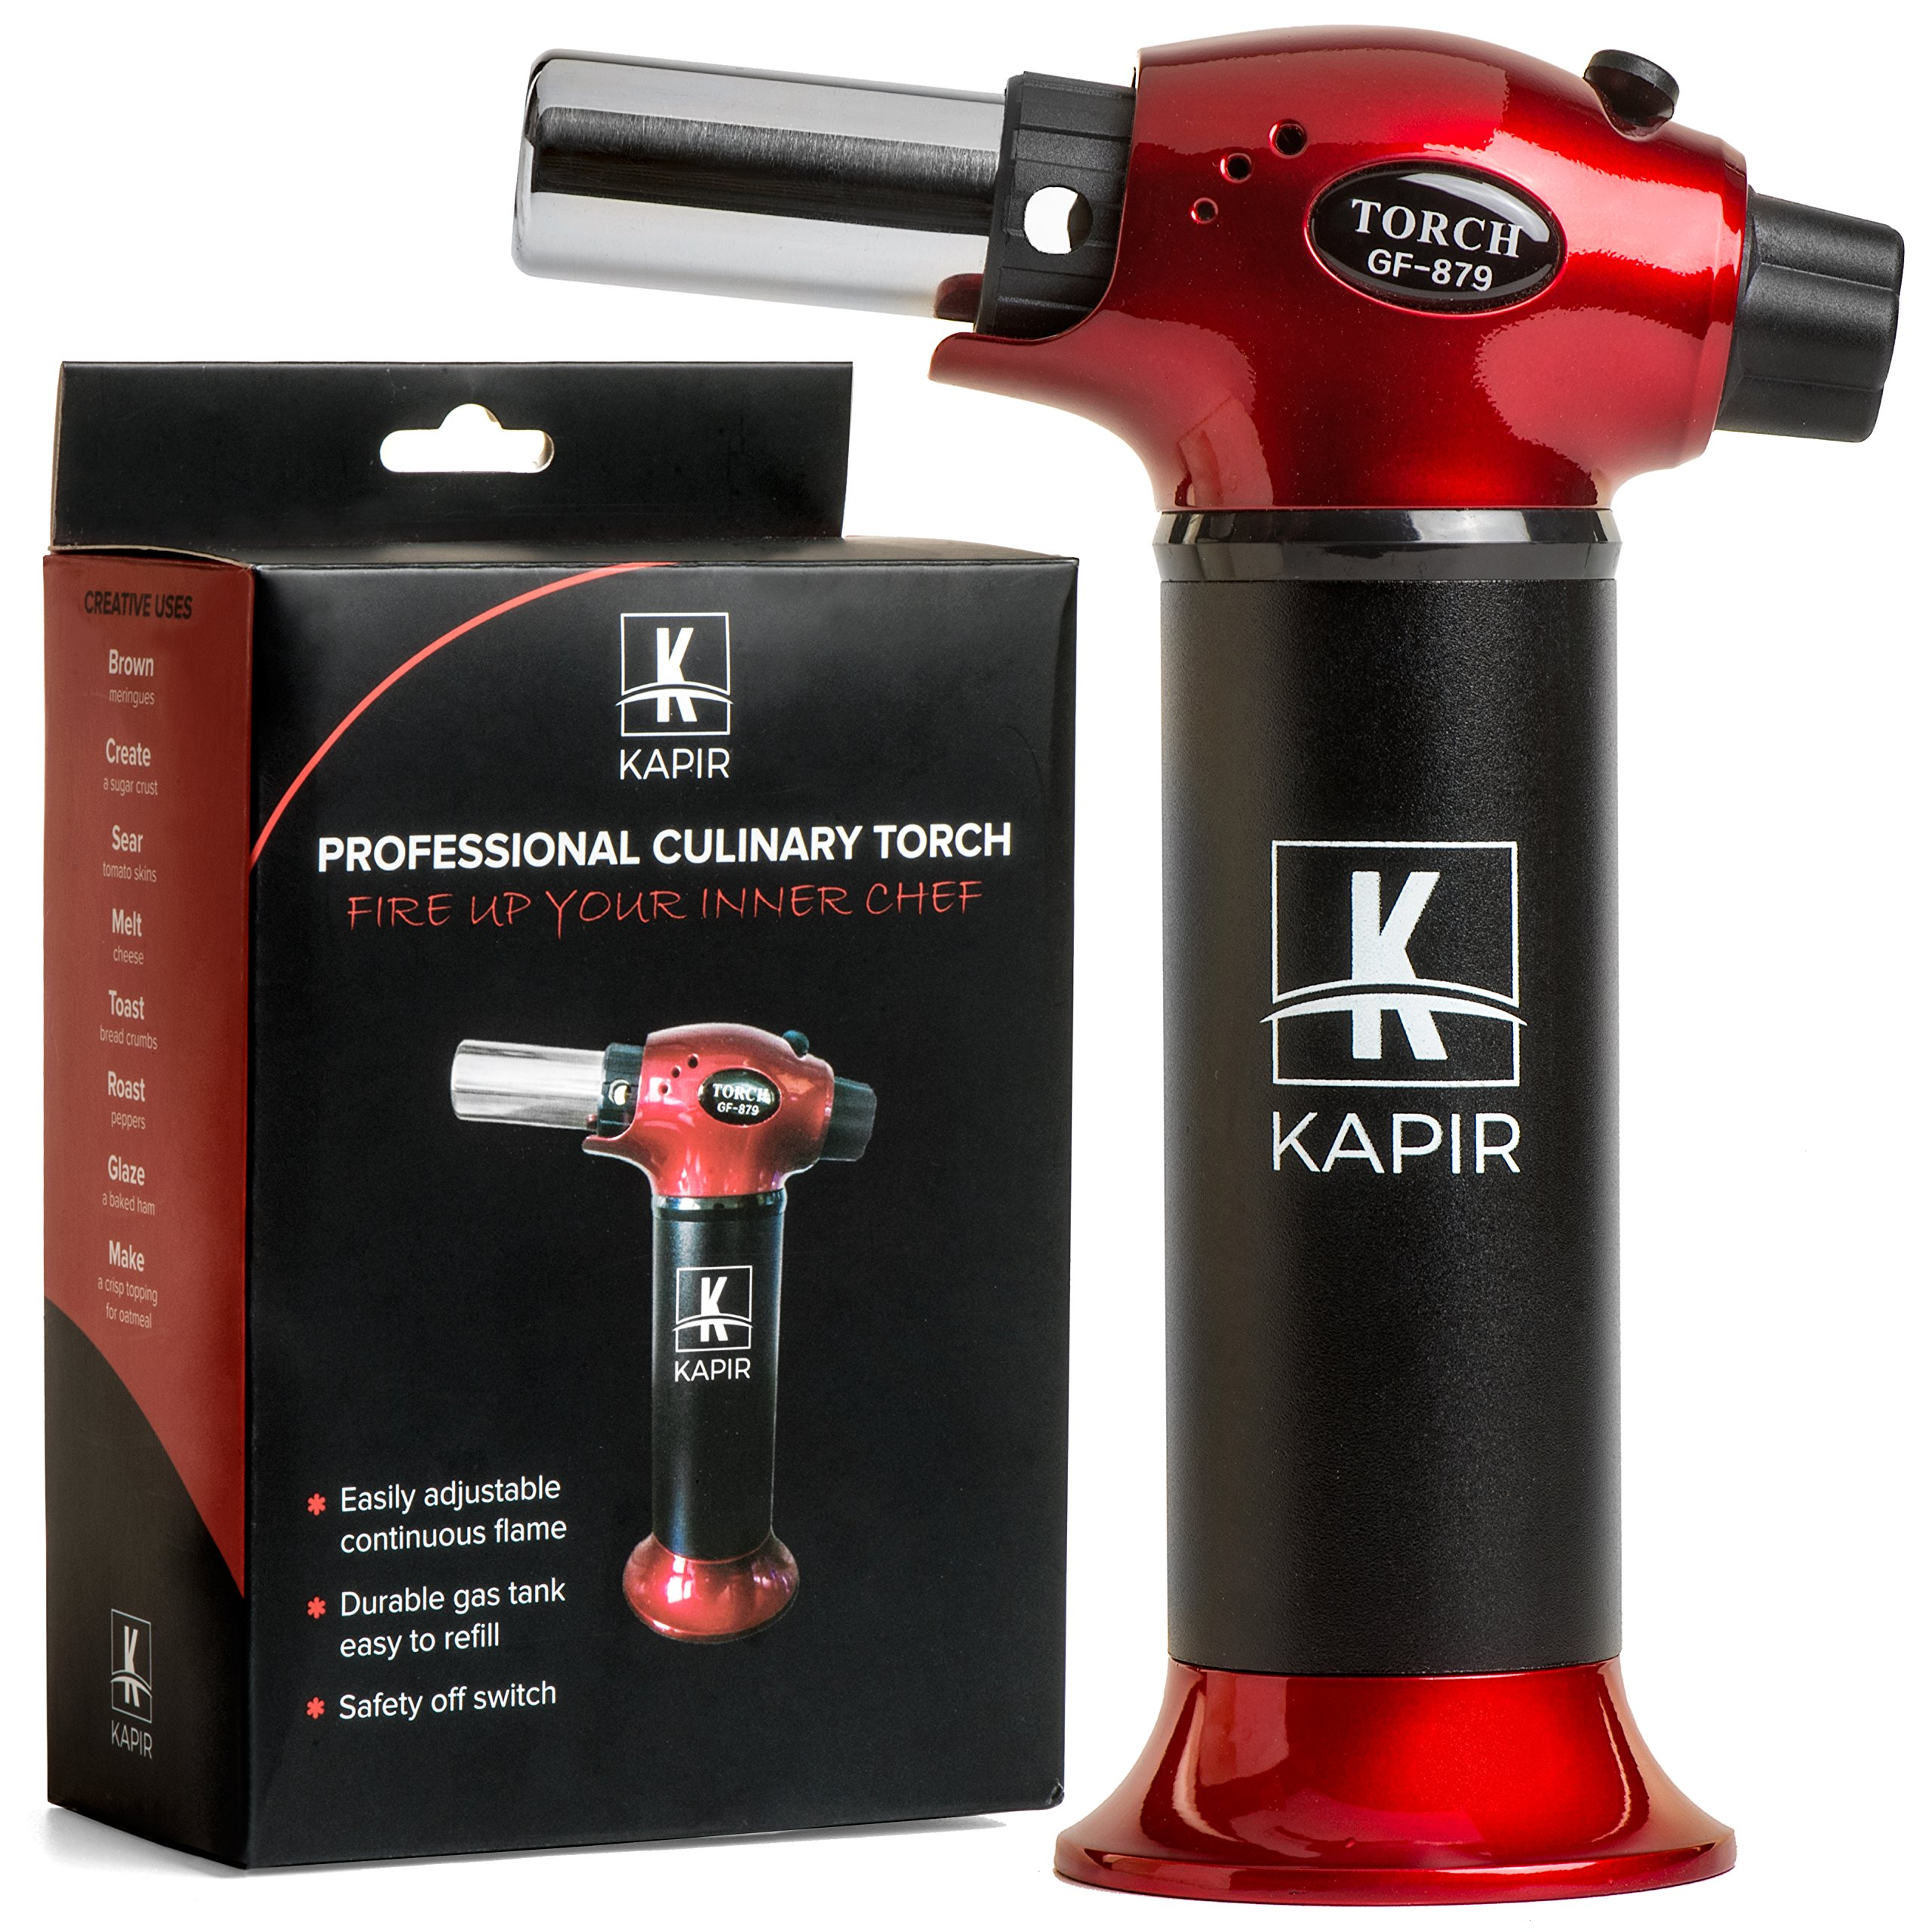 Kitchen Torch for Crème Brulee- Home & Chef Cooking butane Torch. Safety Lock & Adjustable Two Types of Flame. For Pastries, Desserts, Flaming Cocktails, Camping and More. Bonus – 2 Recipe eBooks.